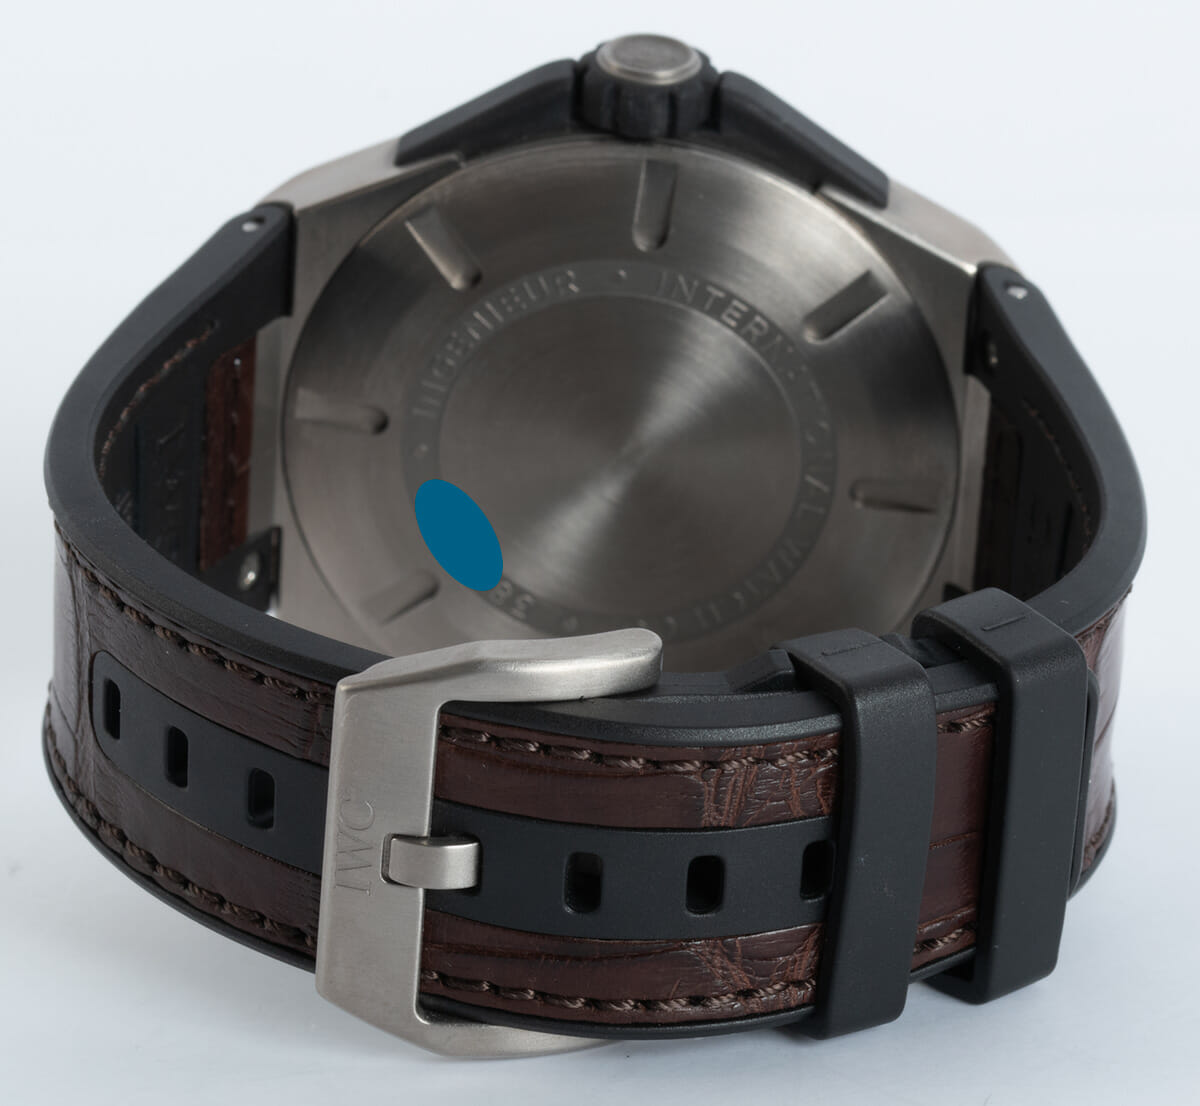 Rear / Band View of Ingenieur Dual Time